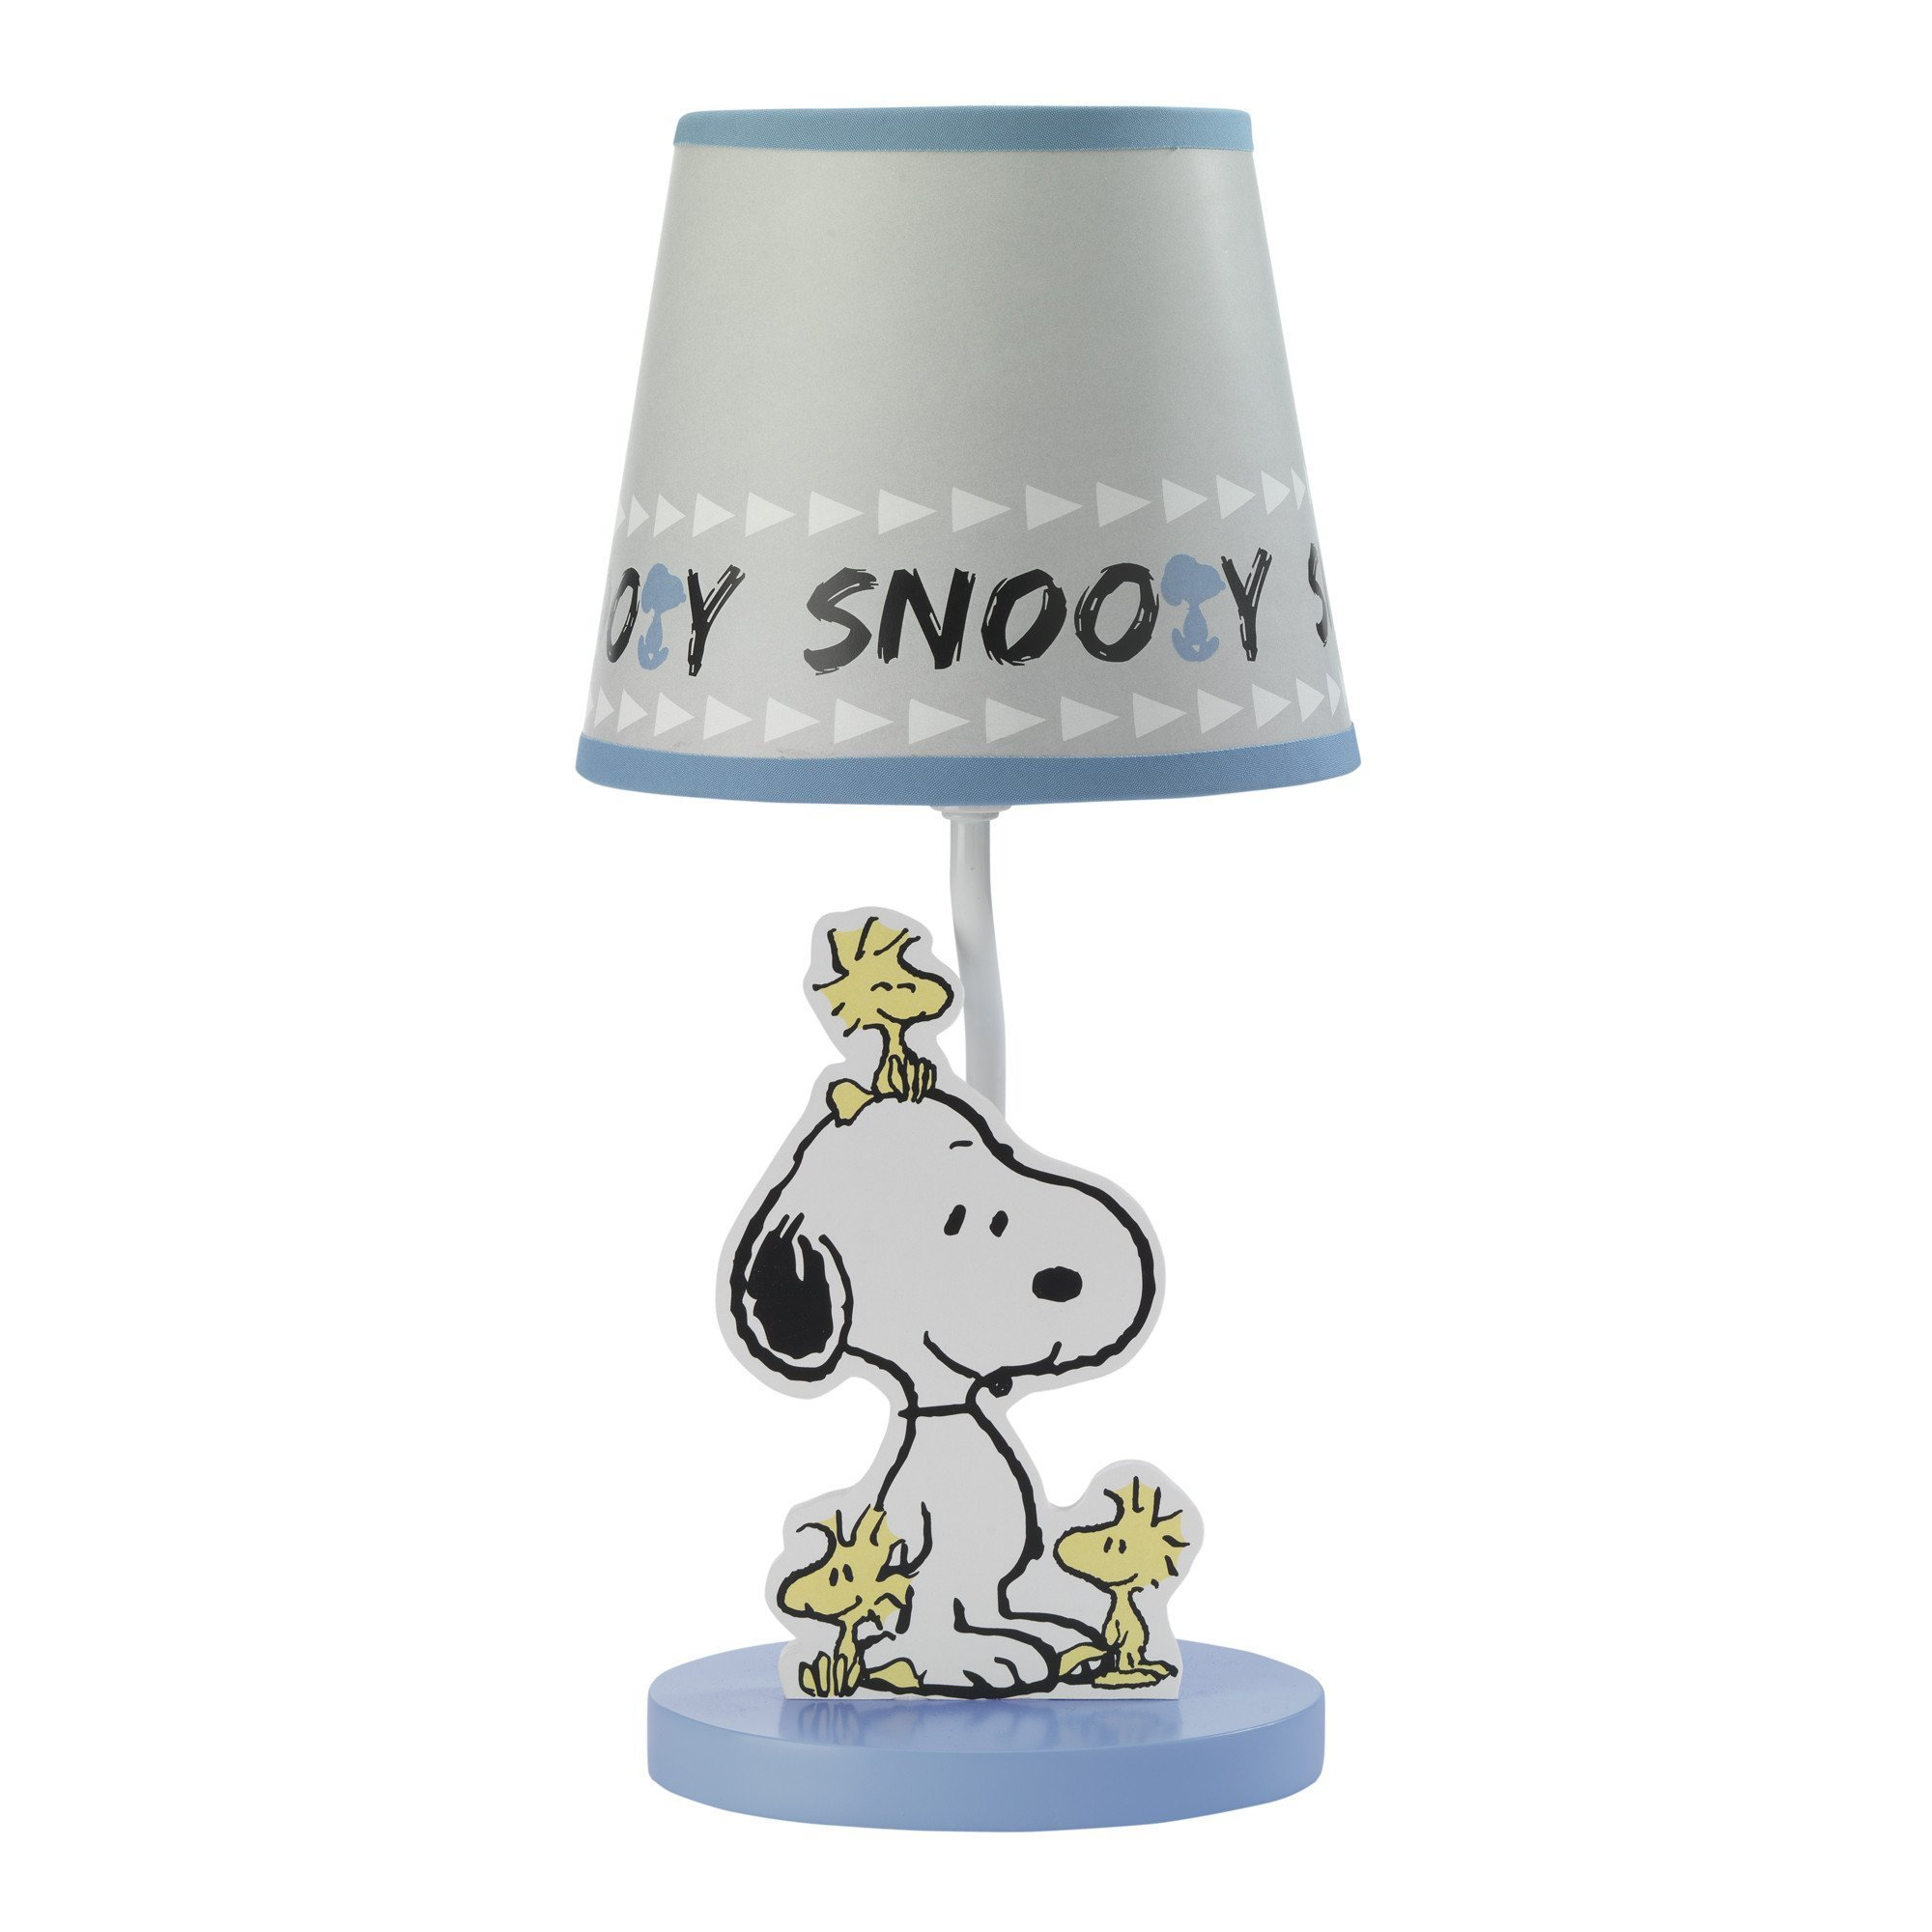 Bedtime Originals Peanuts Forever Snoopy Lamp with Shade & Bulb, Blue/Gray